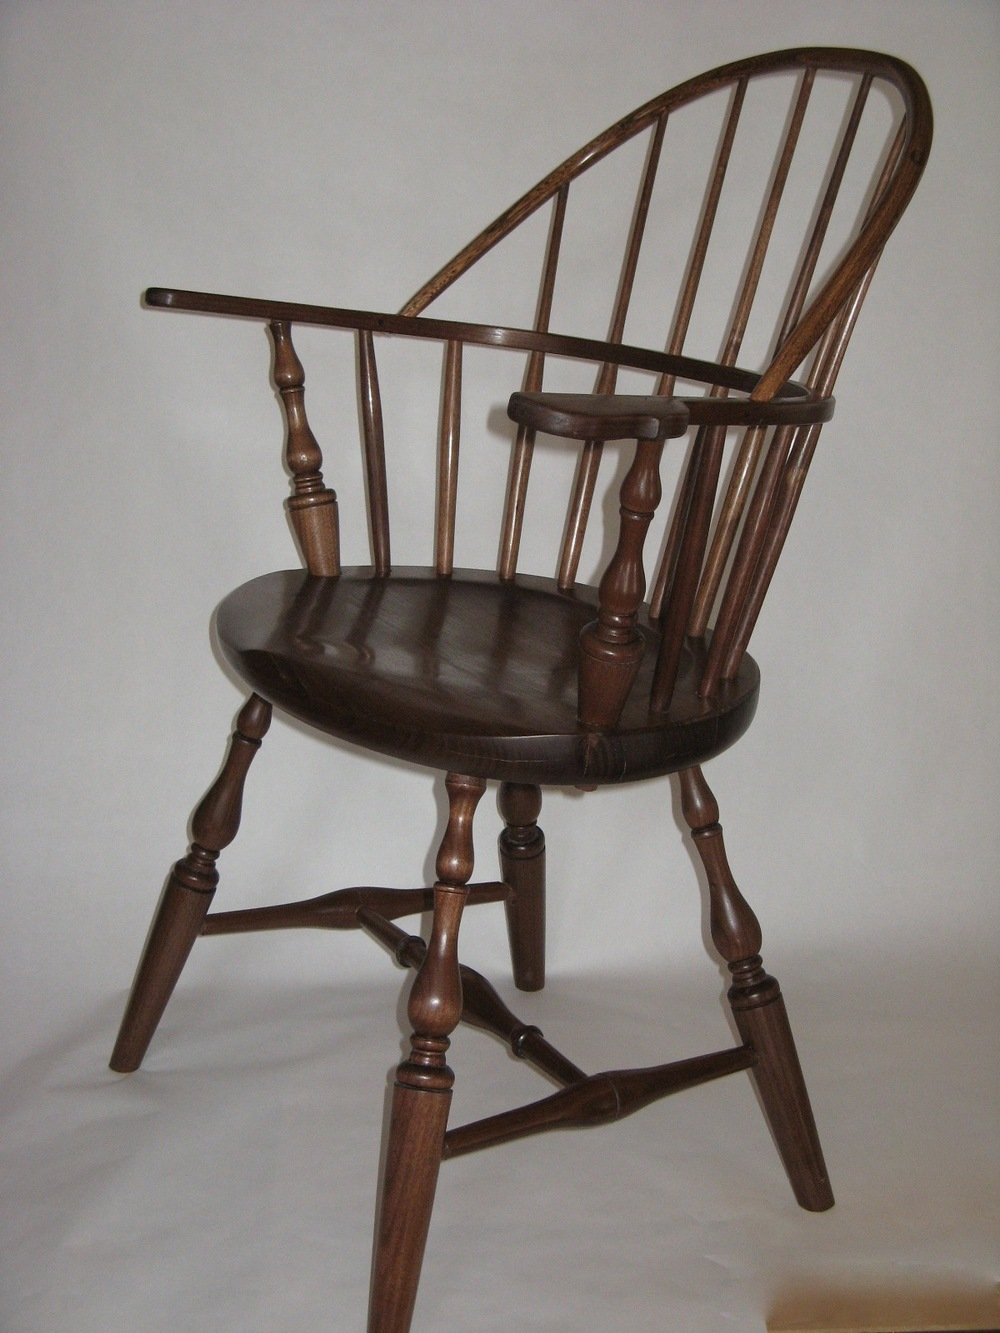 arm picture chairs yew broad wood of prod in pair windsor main gb en chair